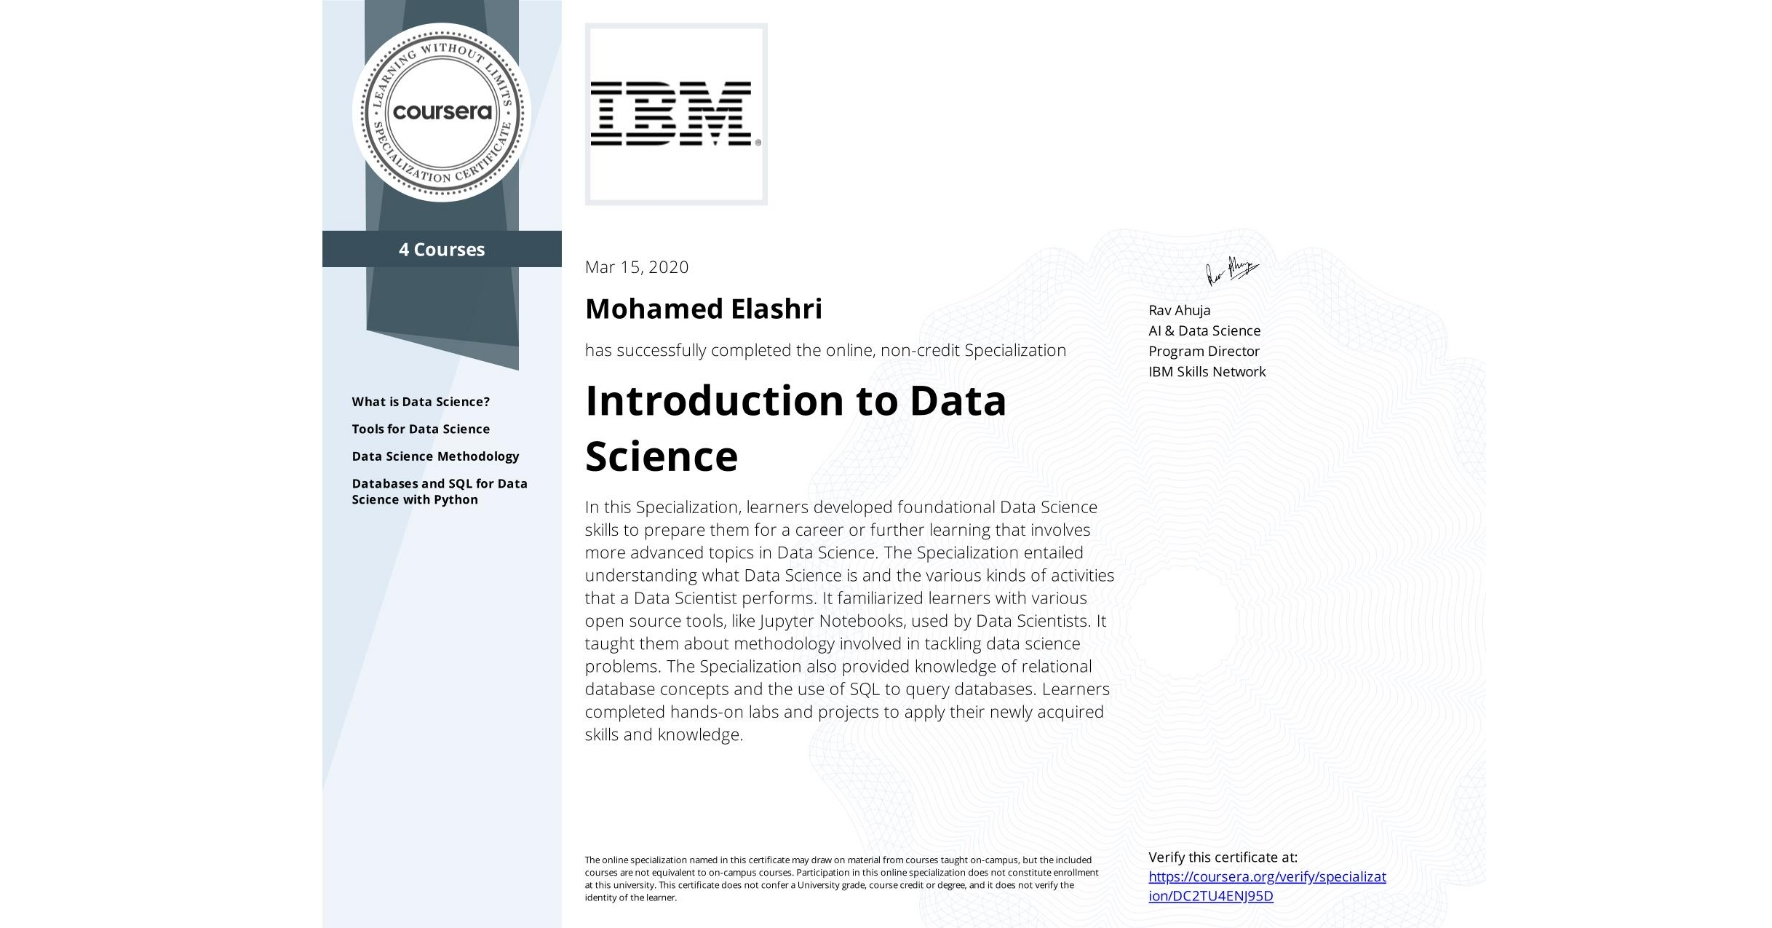 View certificate for Mohamed Elashri, Introduction to Data Science, offered through Coursera. In this Specialization learners developed foundational Data Science skills to prepare them for a career or further learning that involves more advanced topics in Data Science. The specialization entailed understanding what is Data Science is and the various kinds of activities that a Data Scientist's perform. It familiarized learners with various open source tools, like Jupyter notebooks, used by Data Scientists. It taught them about methodology involved in tackling data science problems. The specialization also provided knowledge of relational database concepts and the use of SQL to query databases. Learners completed hands-on labs and projects to apply their newly acquired skills and knowledge.